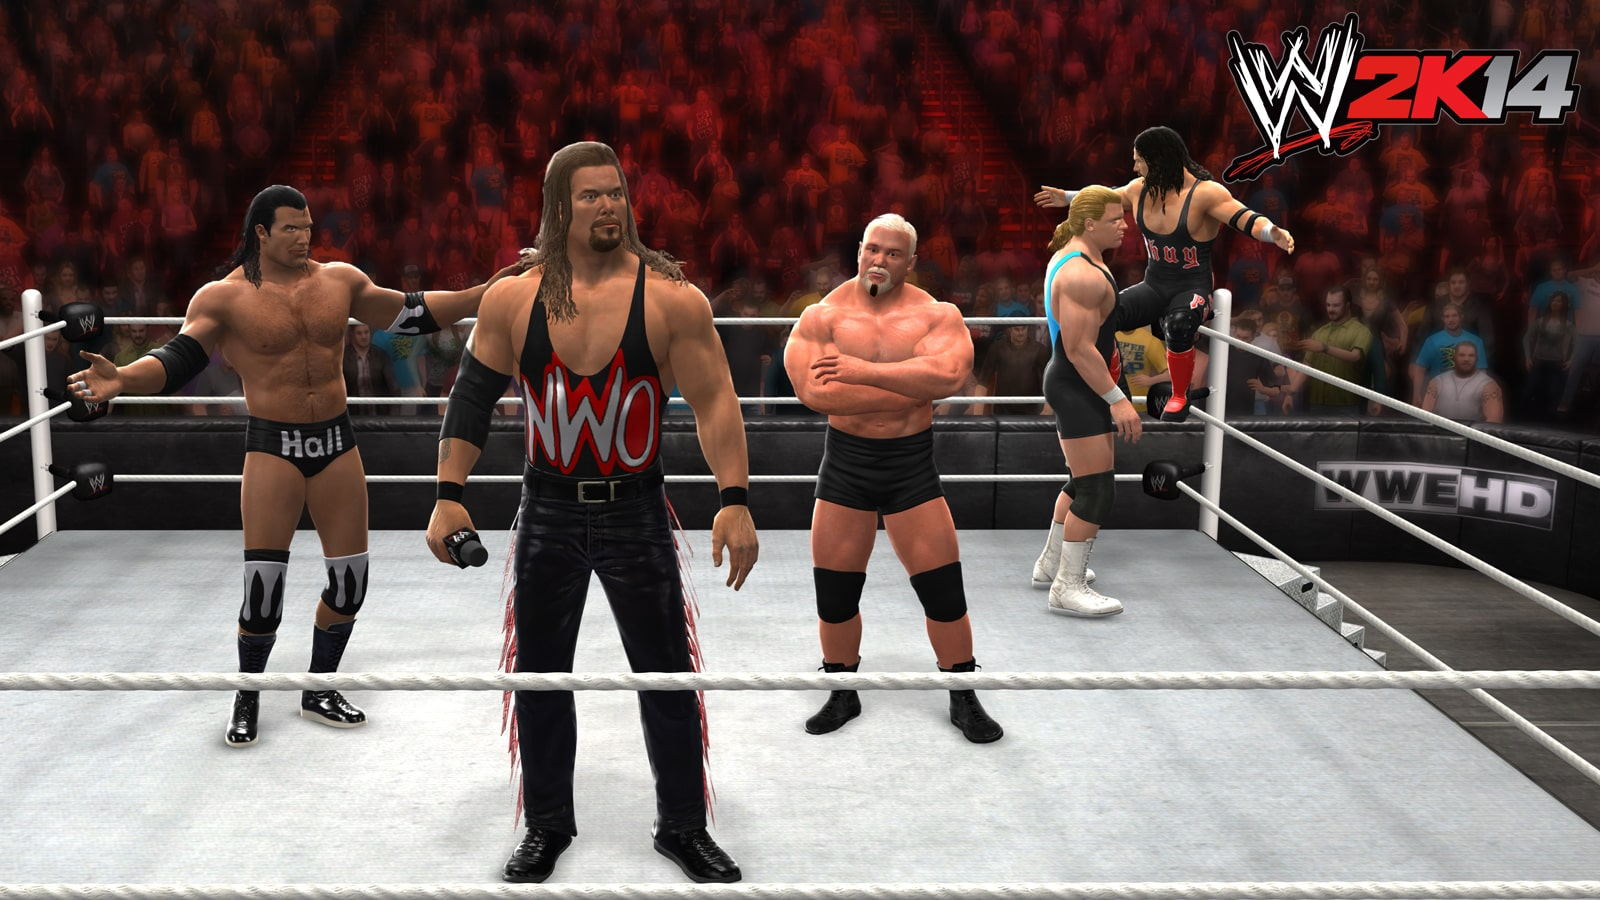 2k14 pc wwe download askthedoctorallons76 —